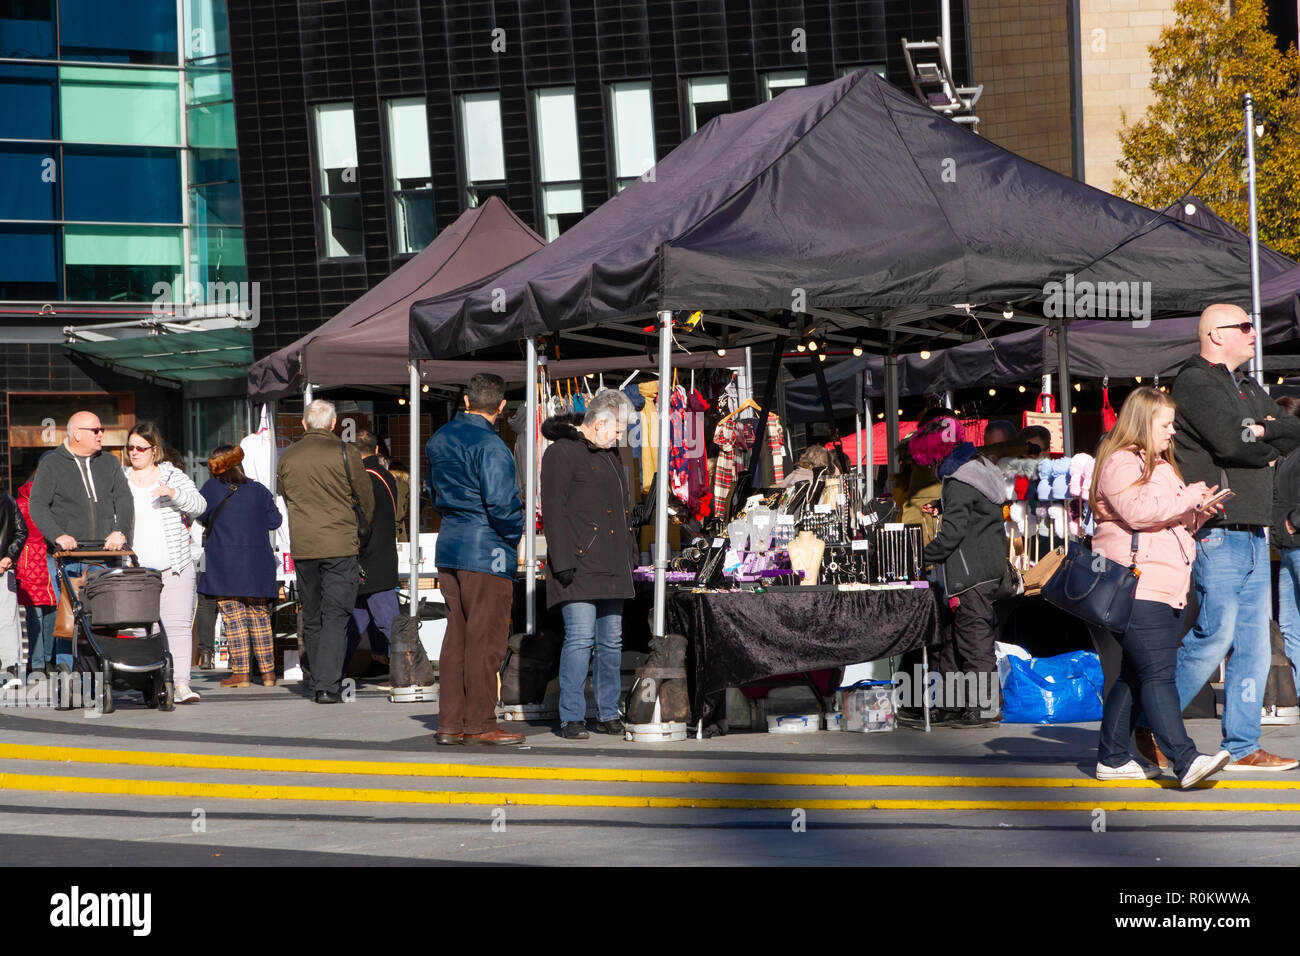 Les décideurs, l'artisanat et marché marché alimentaire au Lowry Outlet Shopping Centre, MediaCityUK, Salford Quays Photo Stock